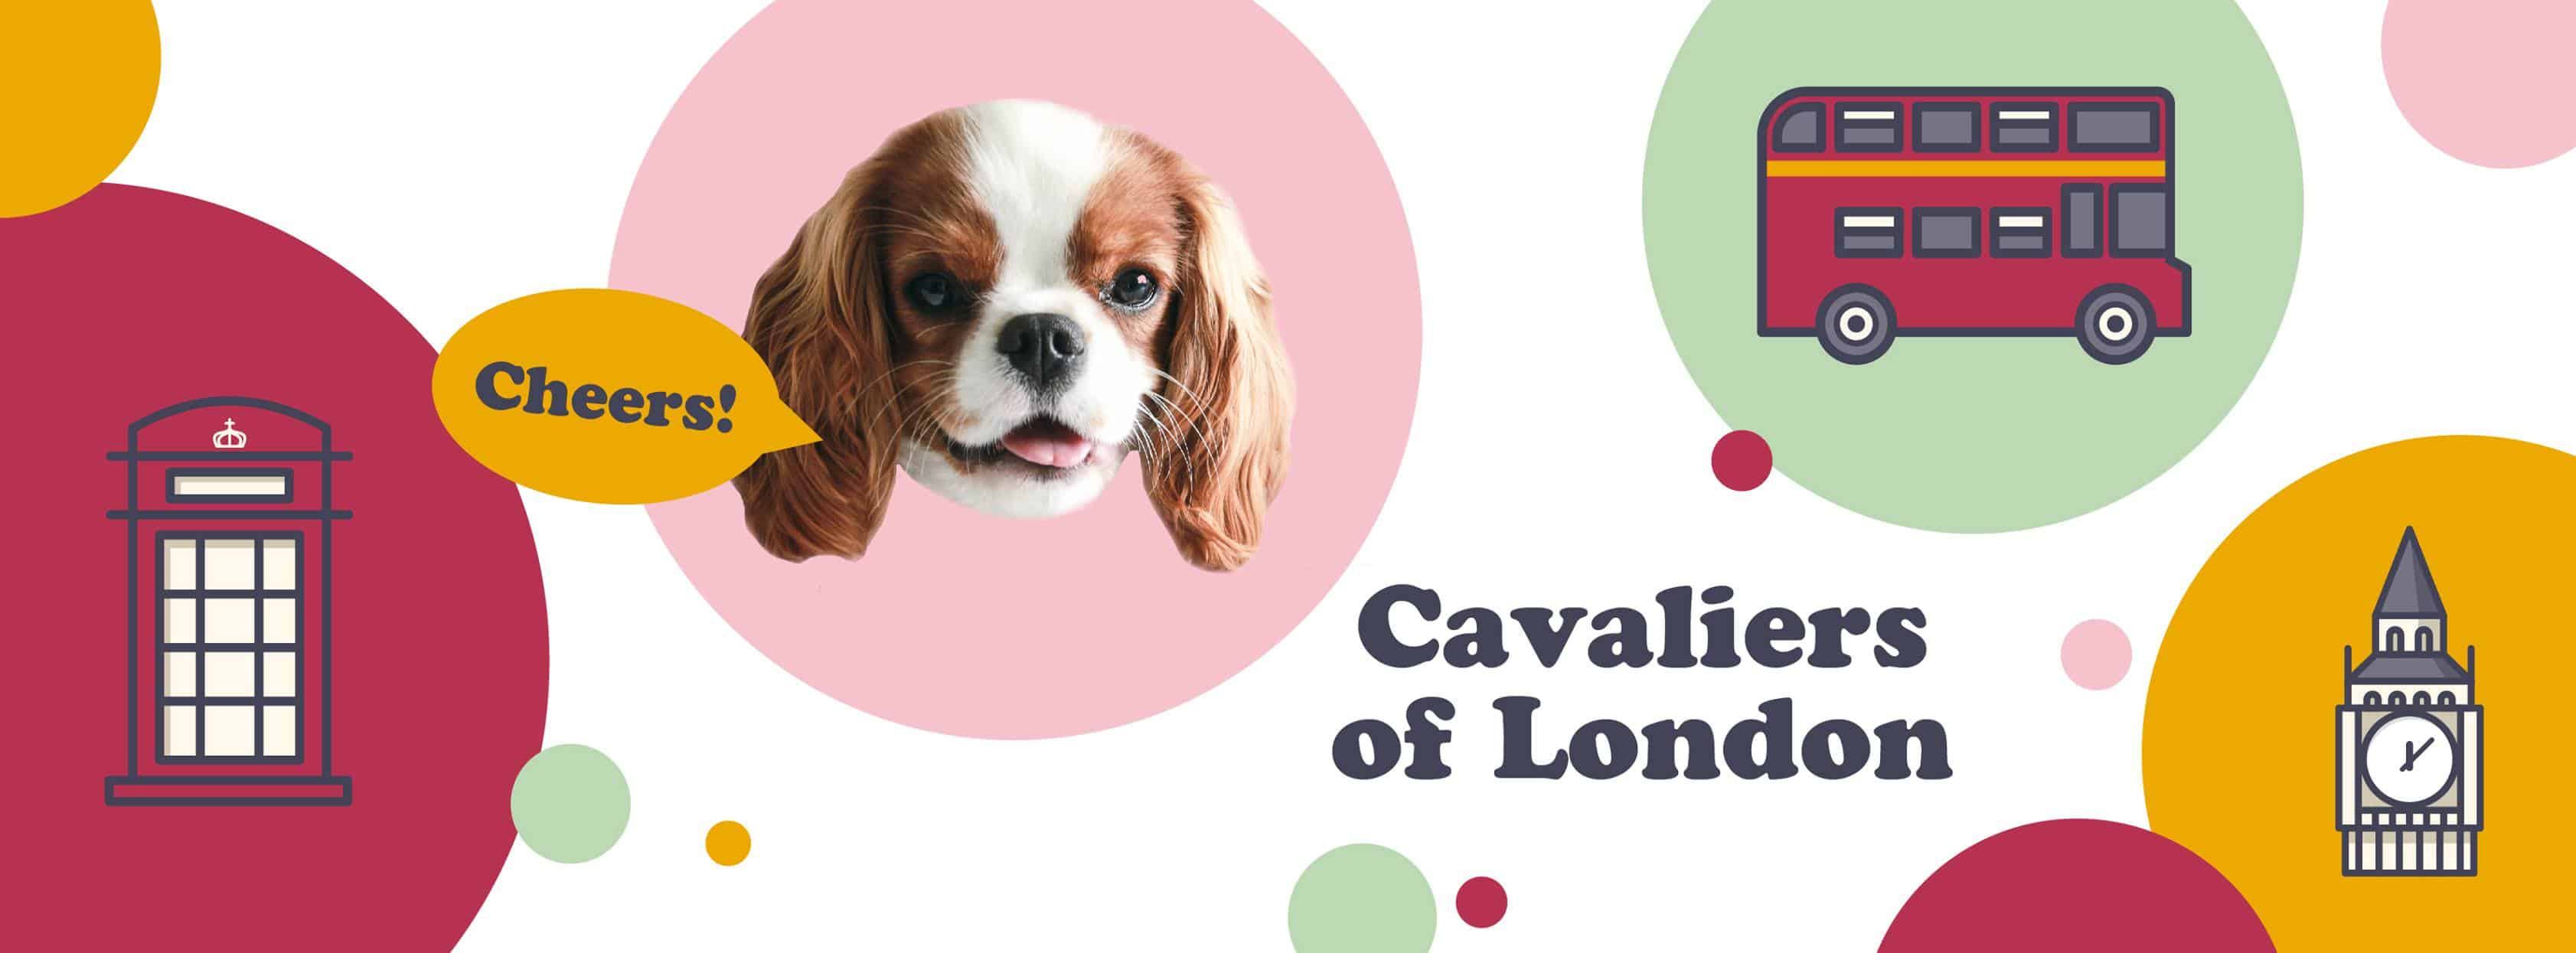 Cavaliers of London Meetup